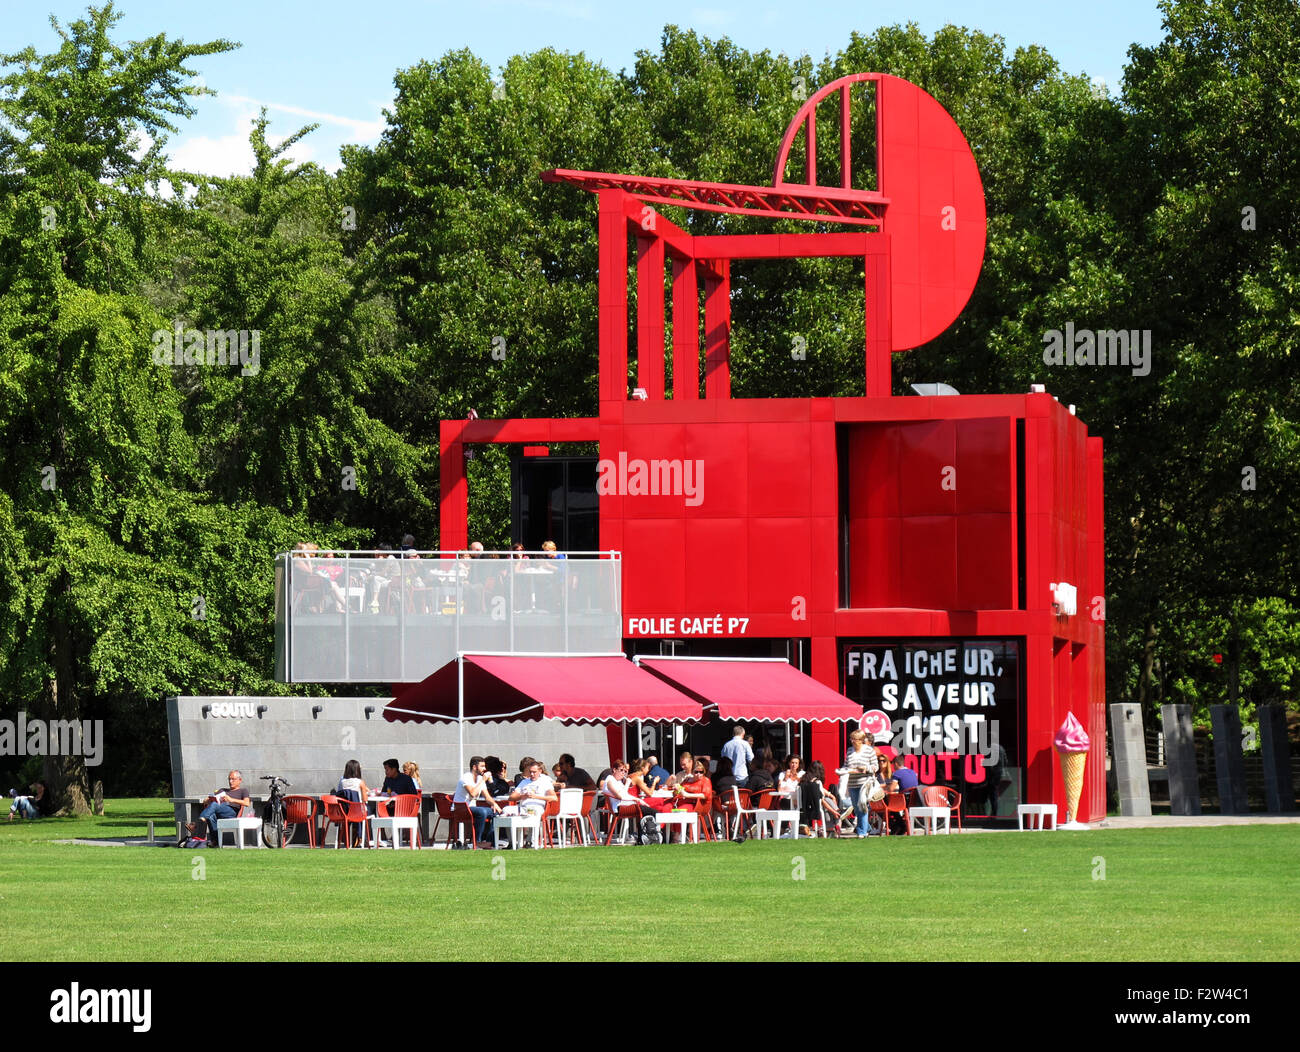 The Folie restaurant,Parc de la Villette,Cite des sciences et de l'industrie,city of sciences and industry,Paris, - Stock Image